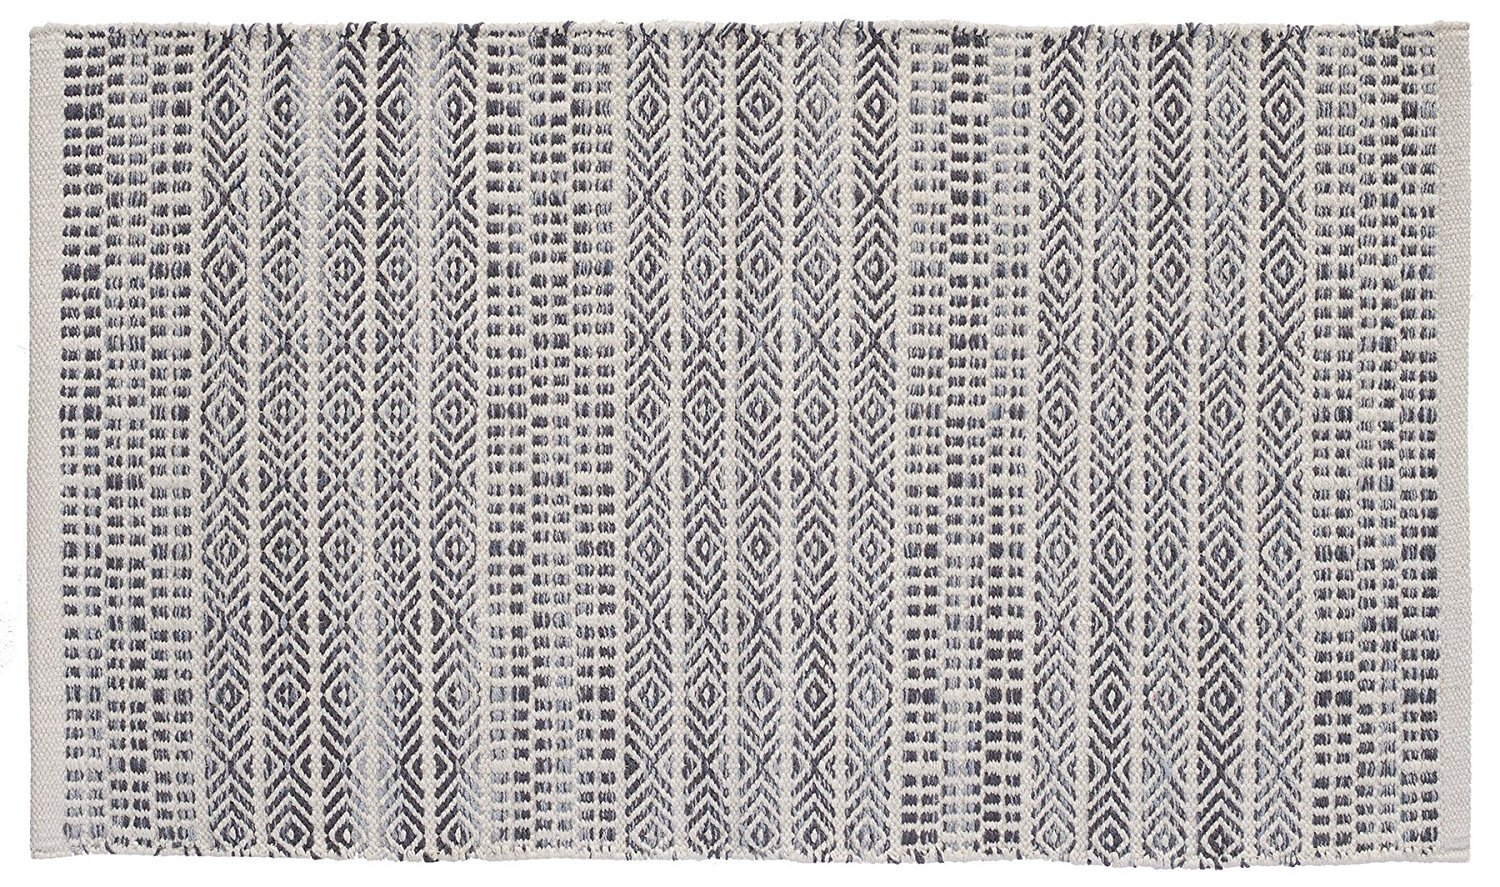 HF by LT Handwoven Sahara Jacquard Rug, 27'' x 45'', Natural and Grey by HOME FURNISHINGS BY LARRY TRAVERSO (Image #2)